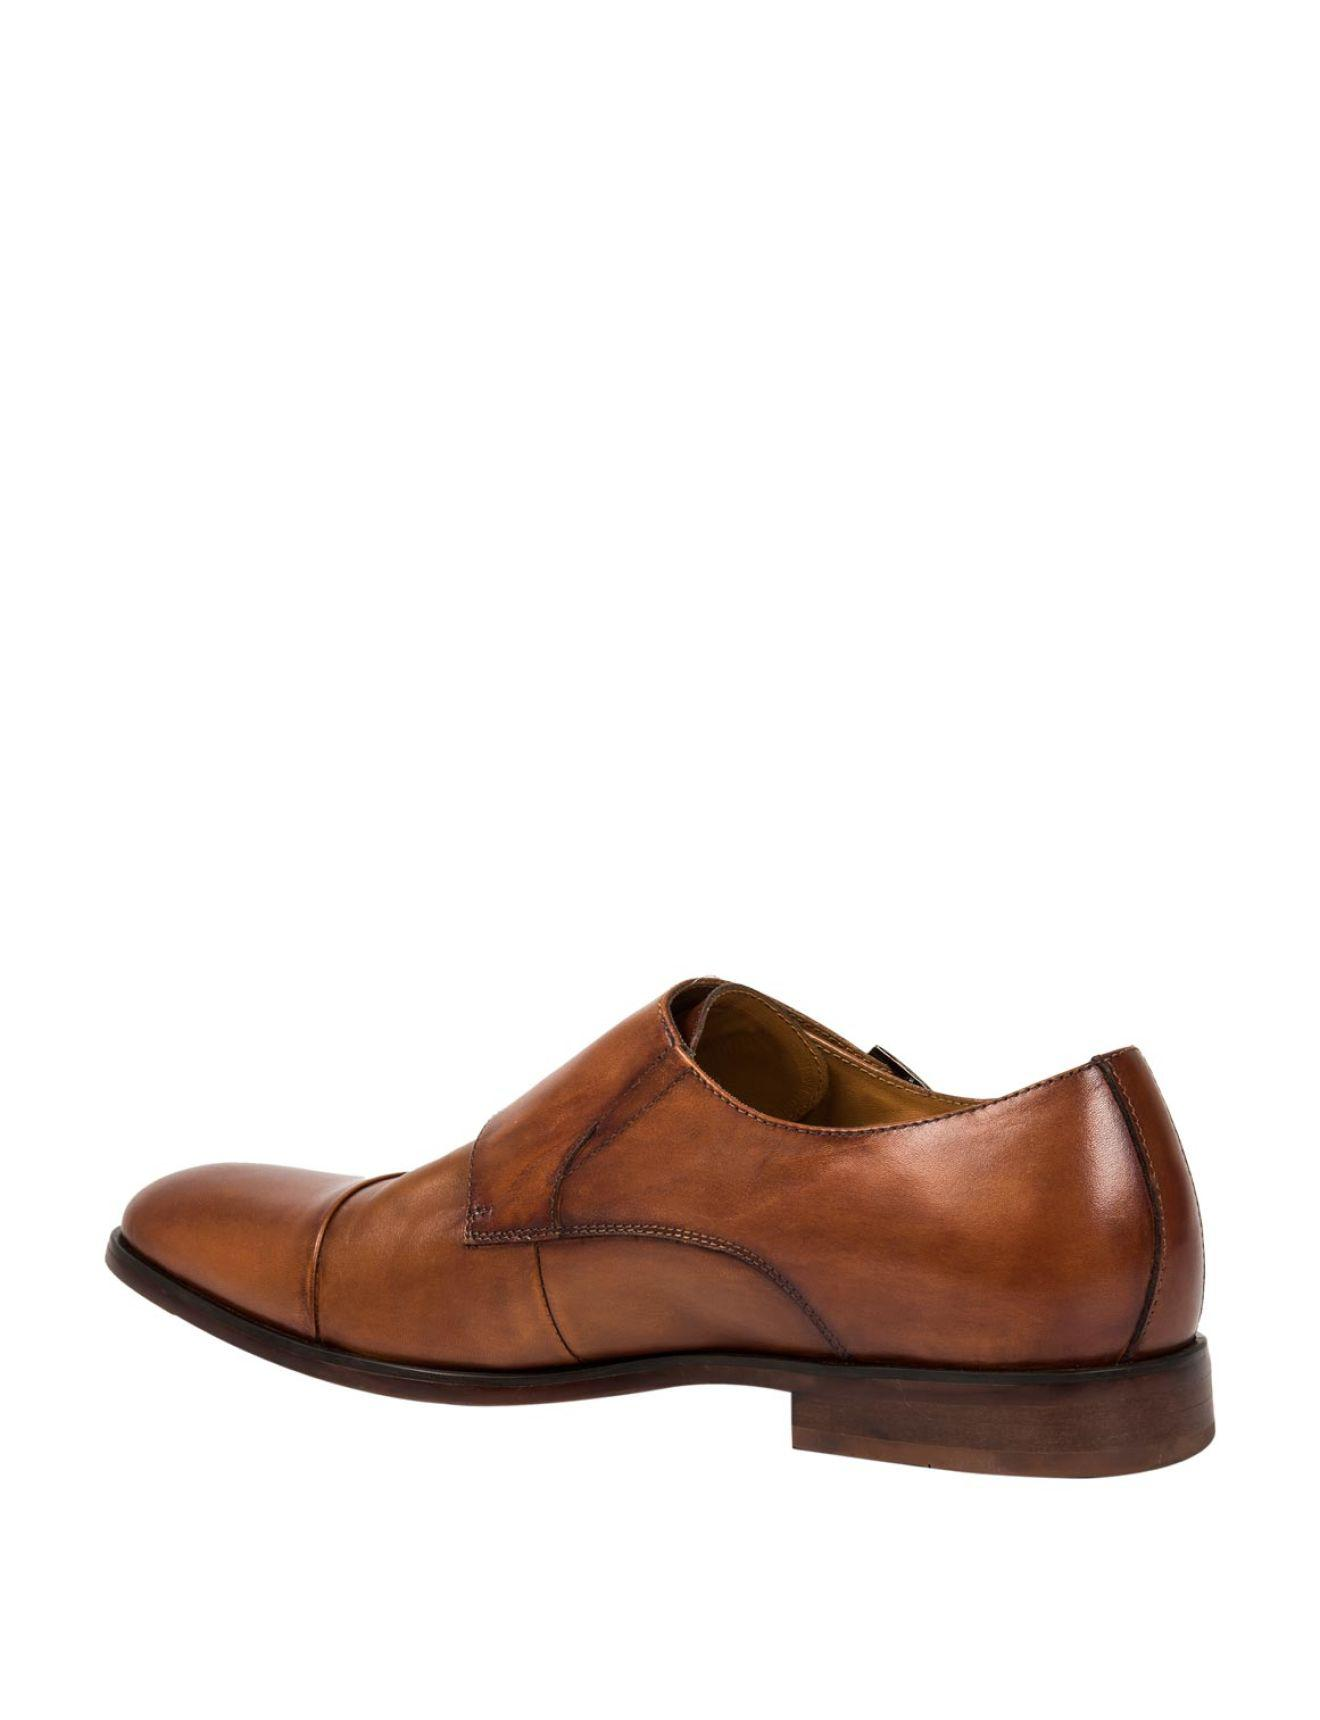 eaaa12e586907 David Jones Leather Double Monk Strap Shoes in Brown for Men - Lyst